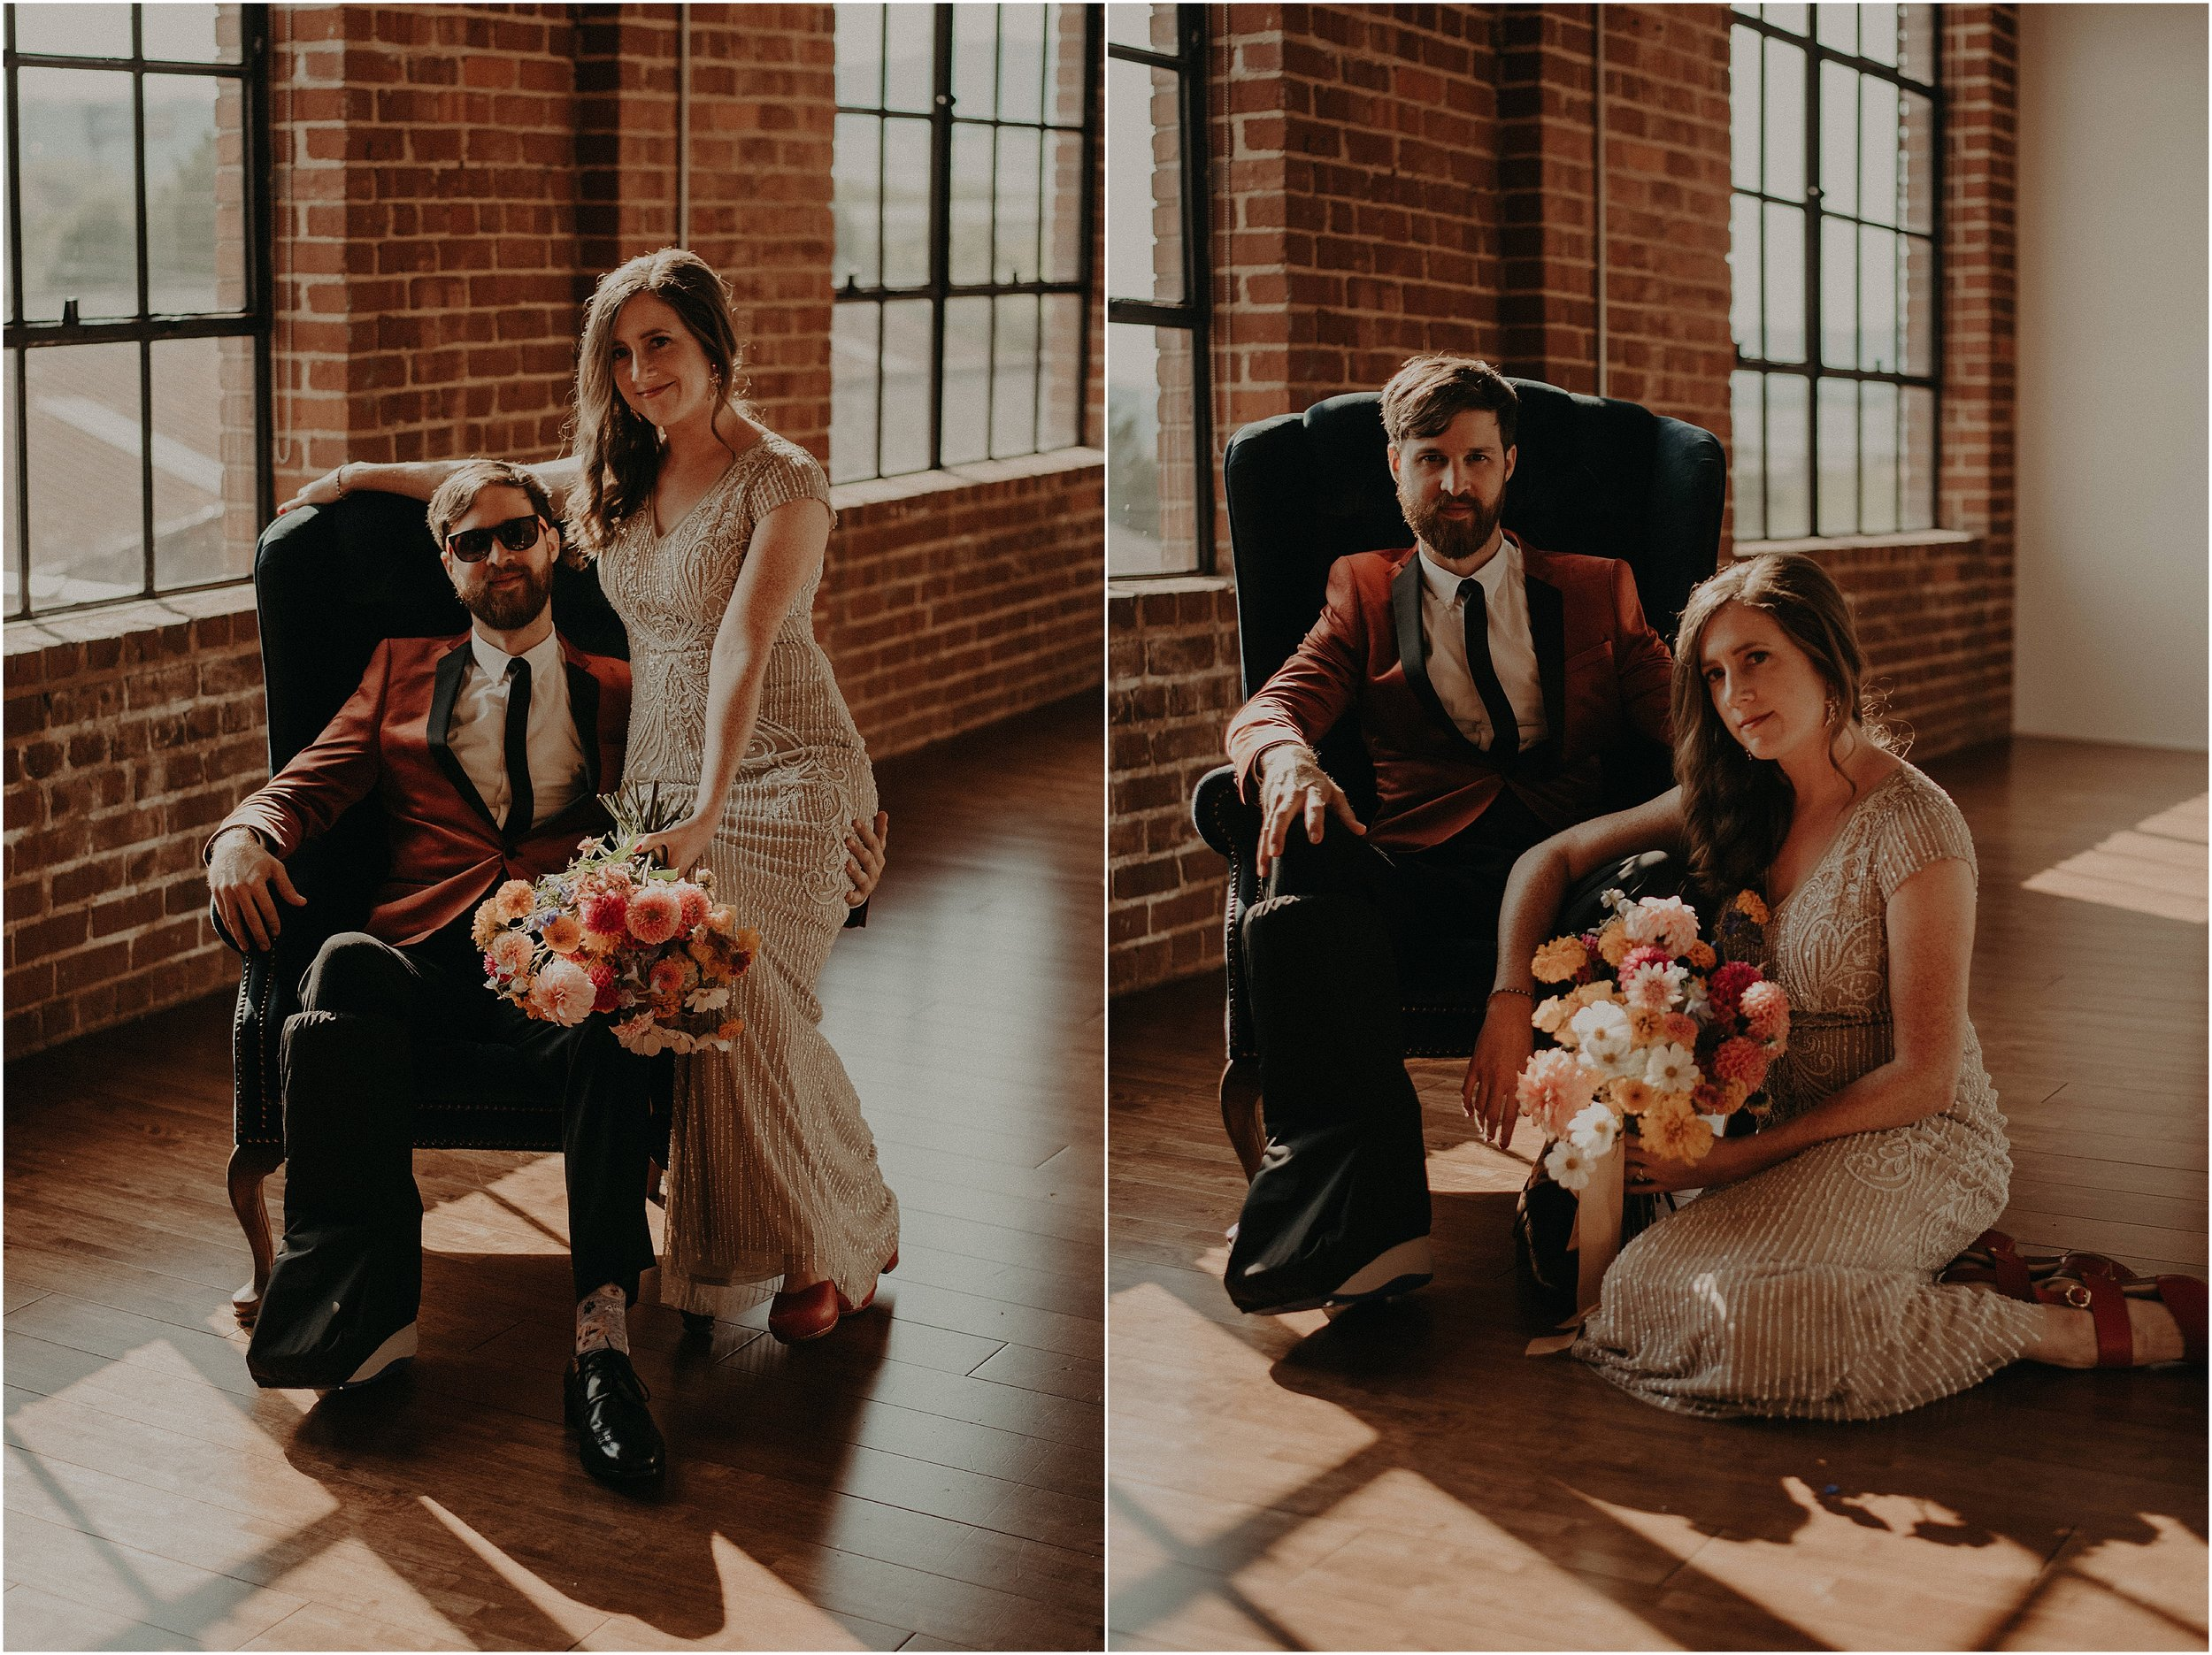 The groom had a broken leg, but it didn't stop his dapperness!